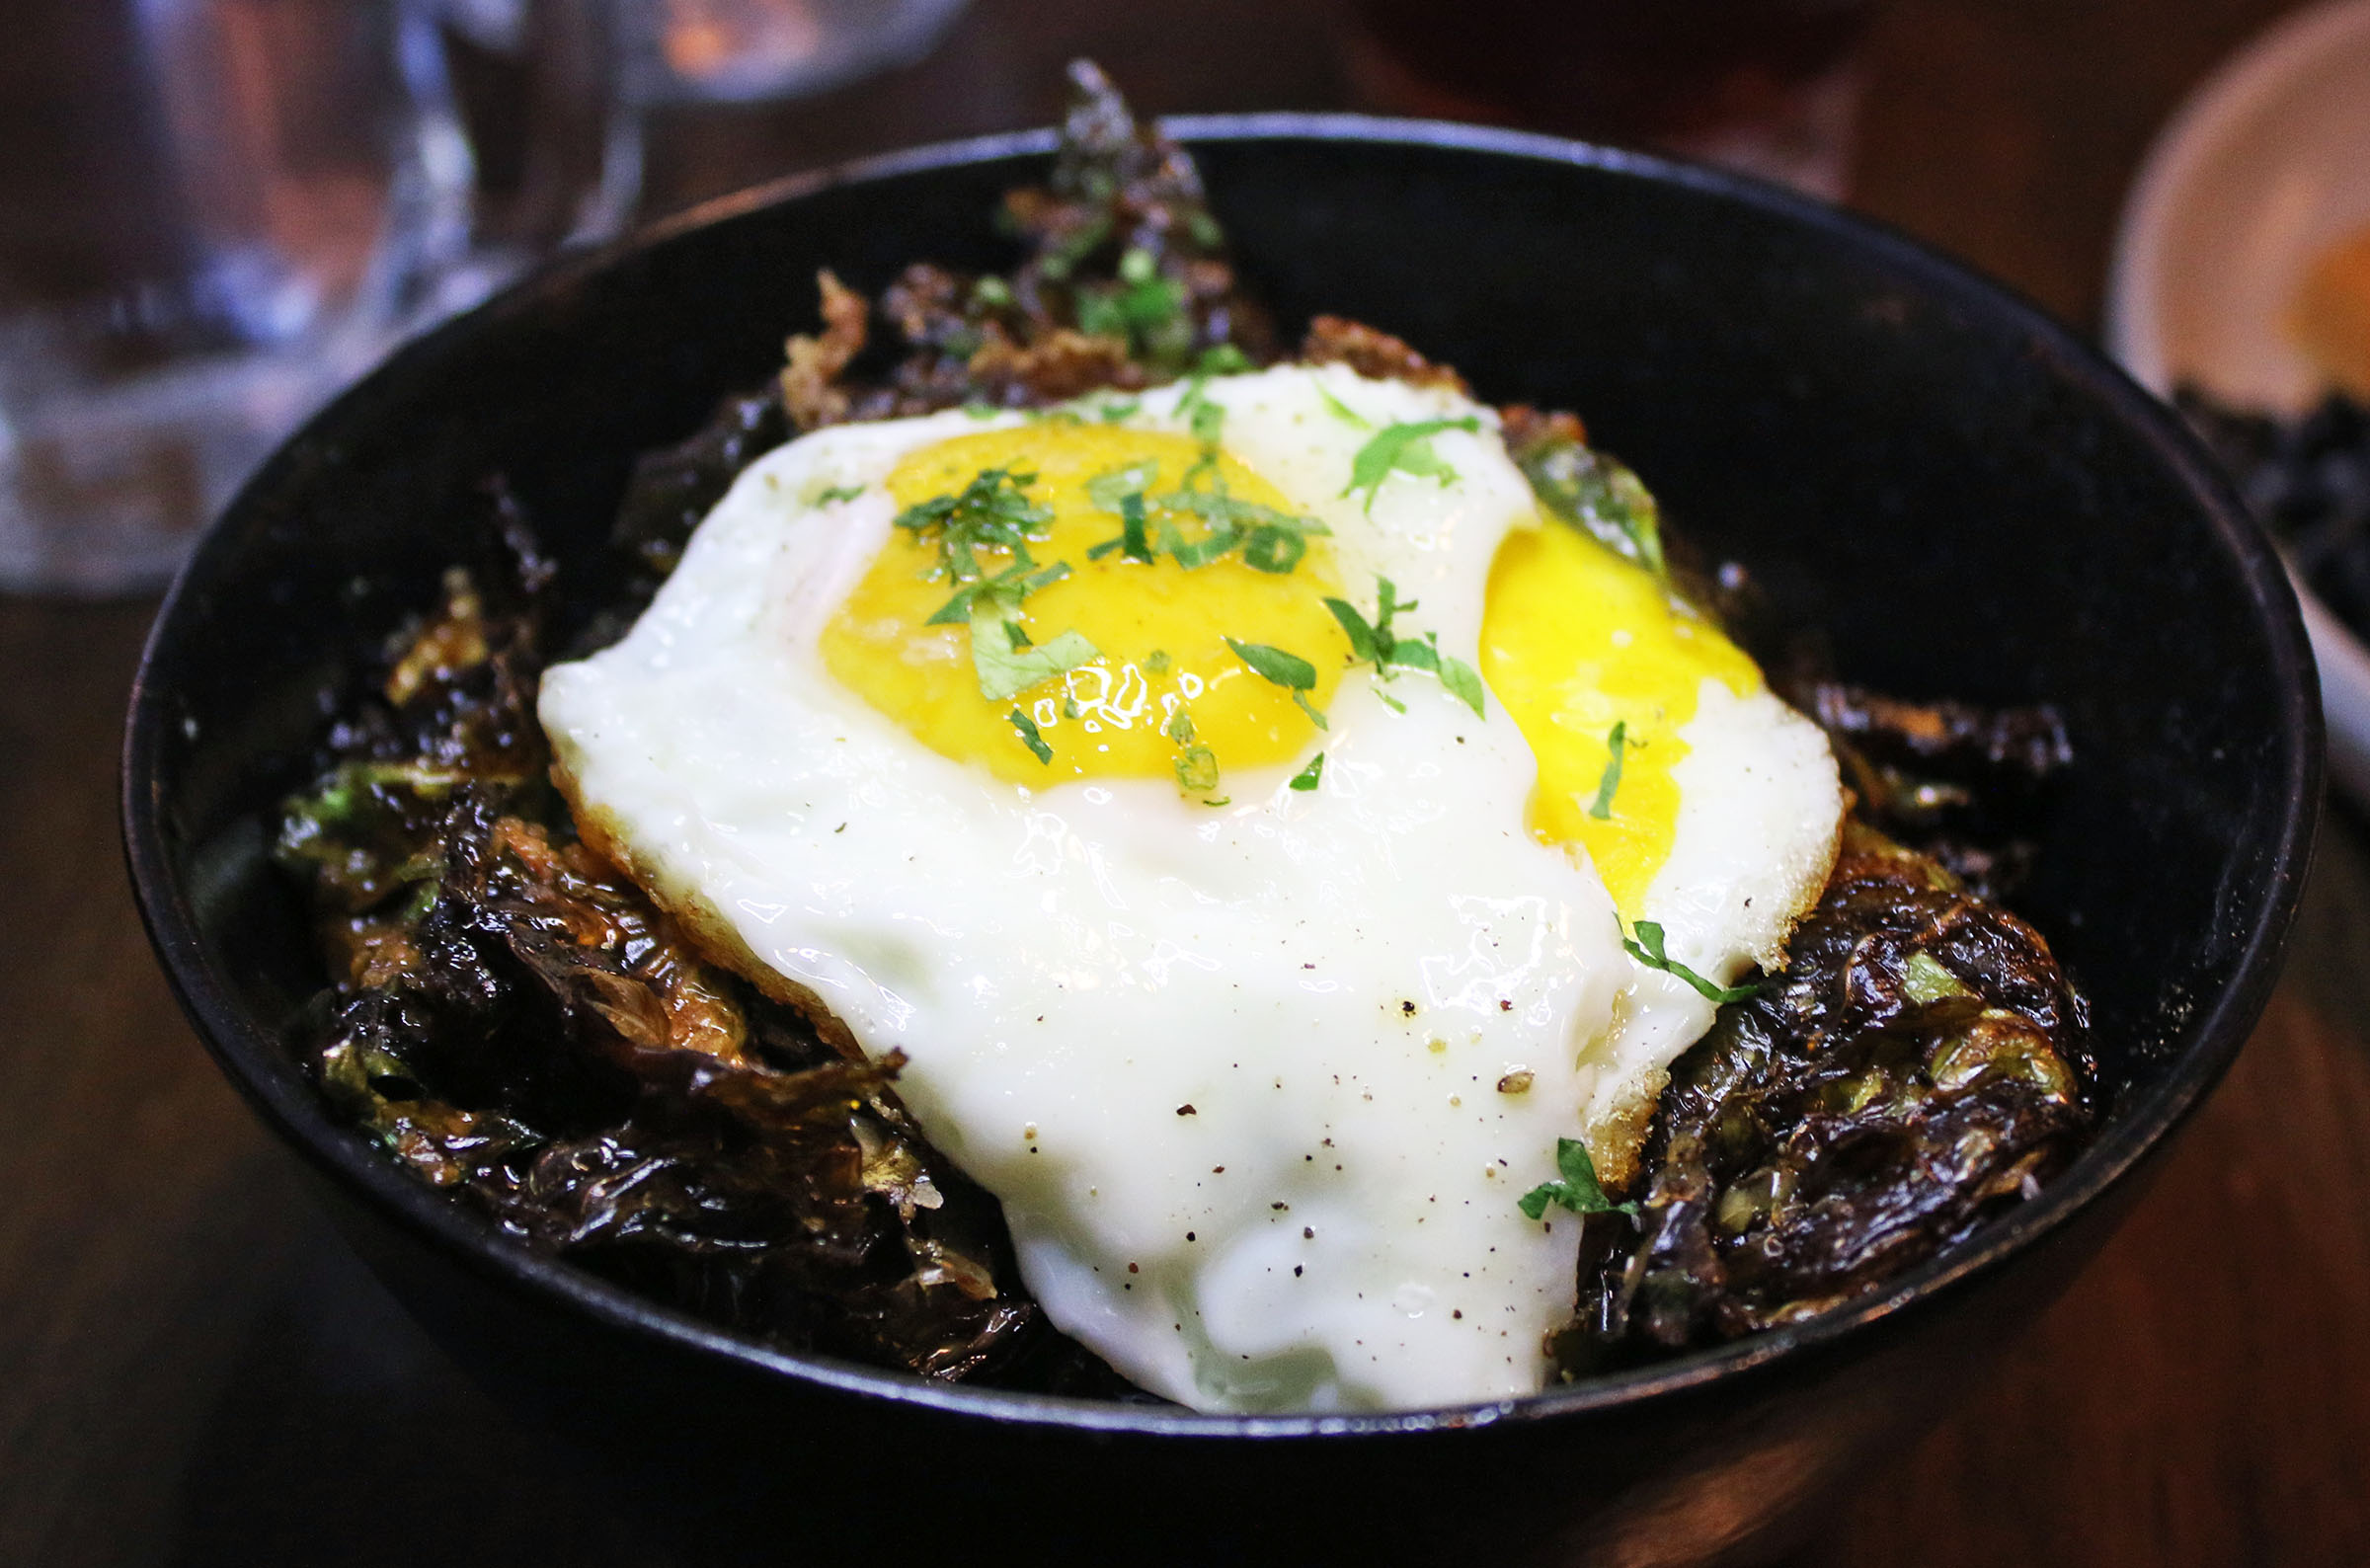 Crispy Fried Brussels Sproutswith chili vinaigrette, lime crème and a sunny-side egg